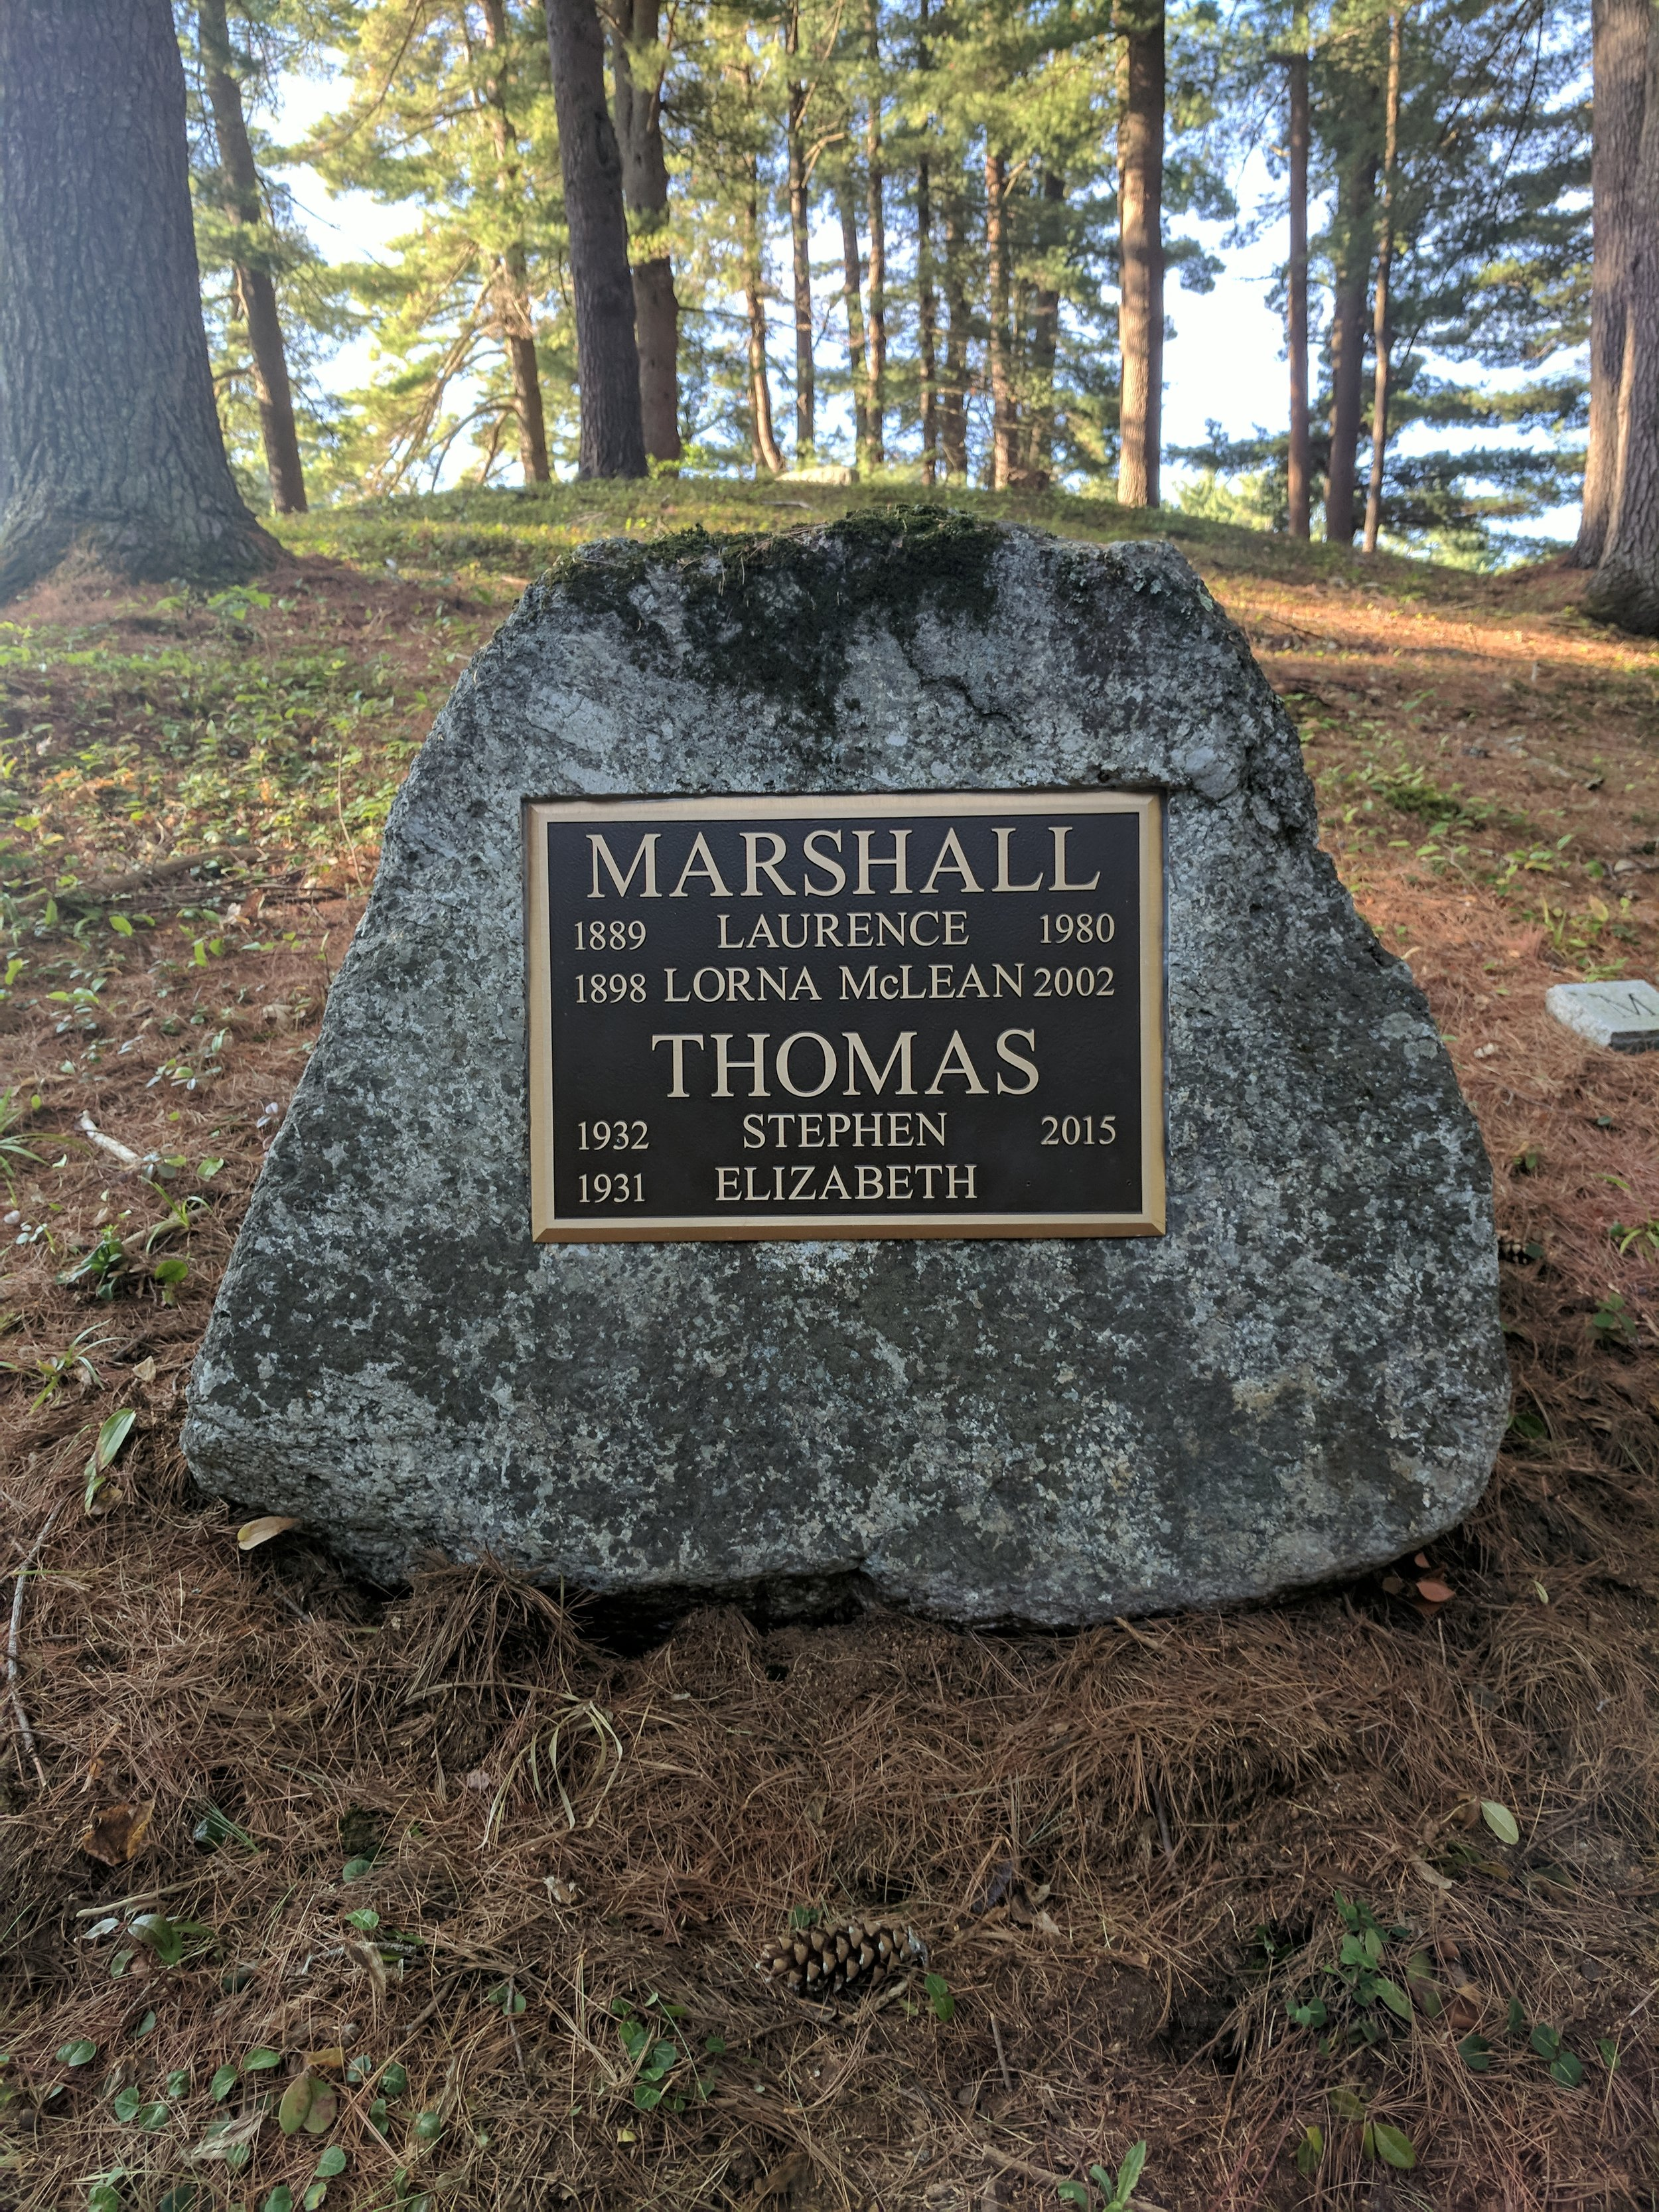 The Marshall boulder was just recently updated with a new bronze plaque that includes more family names and dates.